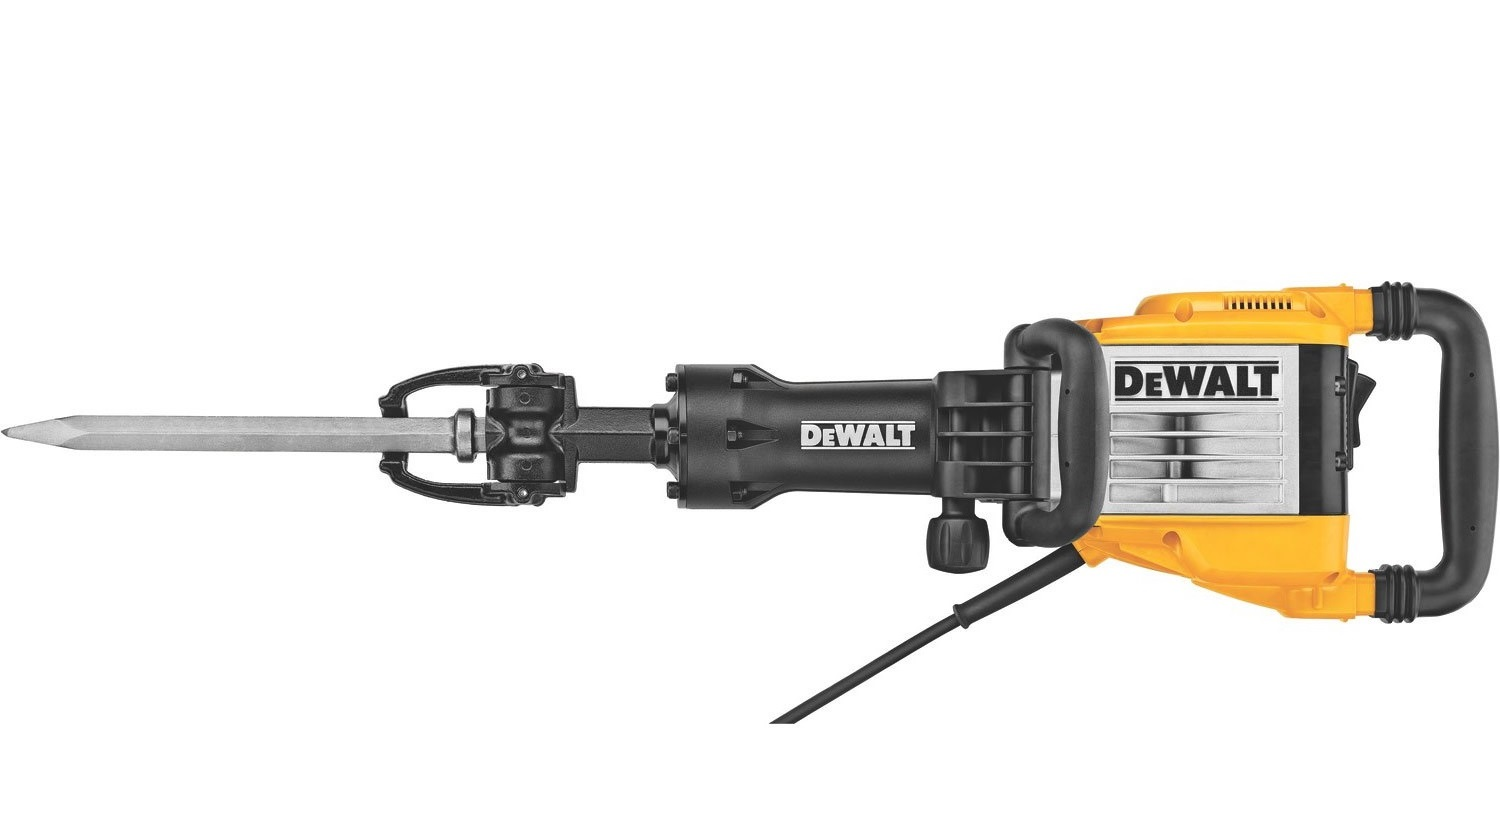 Best Demolition Hammer for Tile Removal and Digging